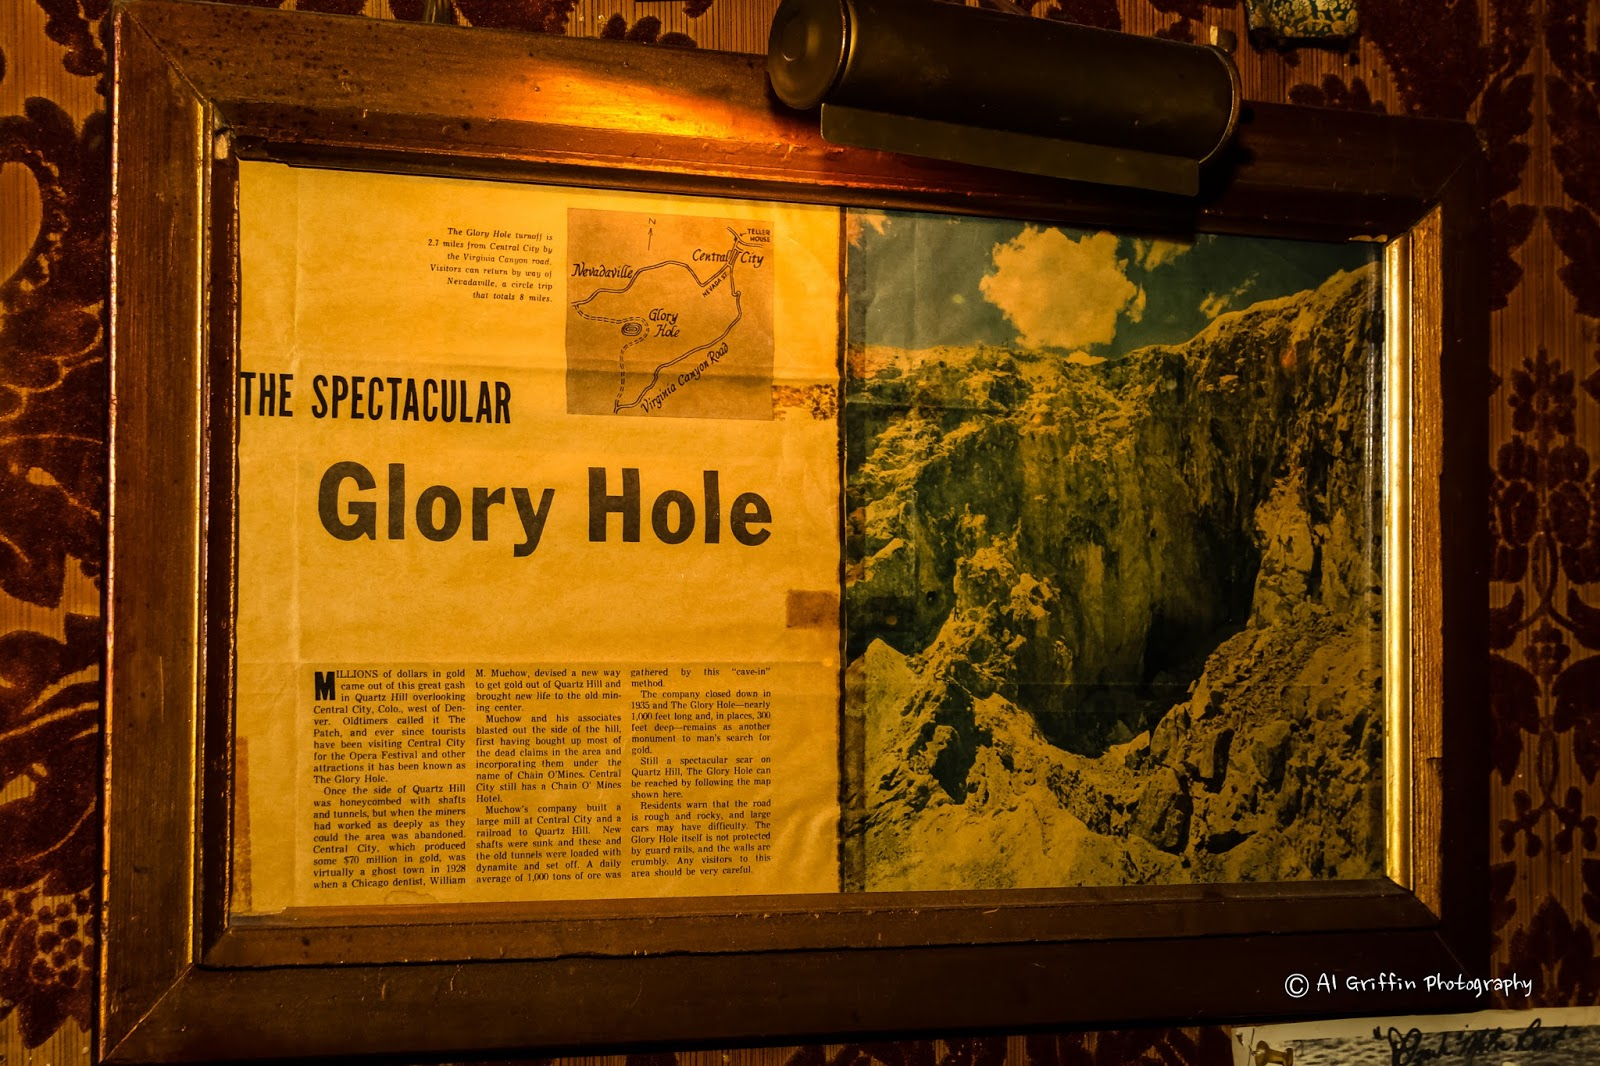 Infinite gloryholes story